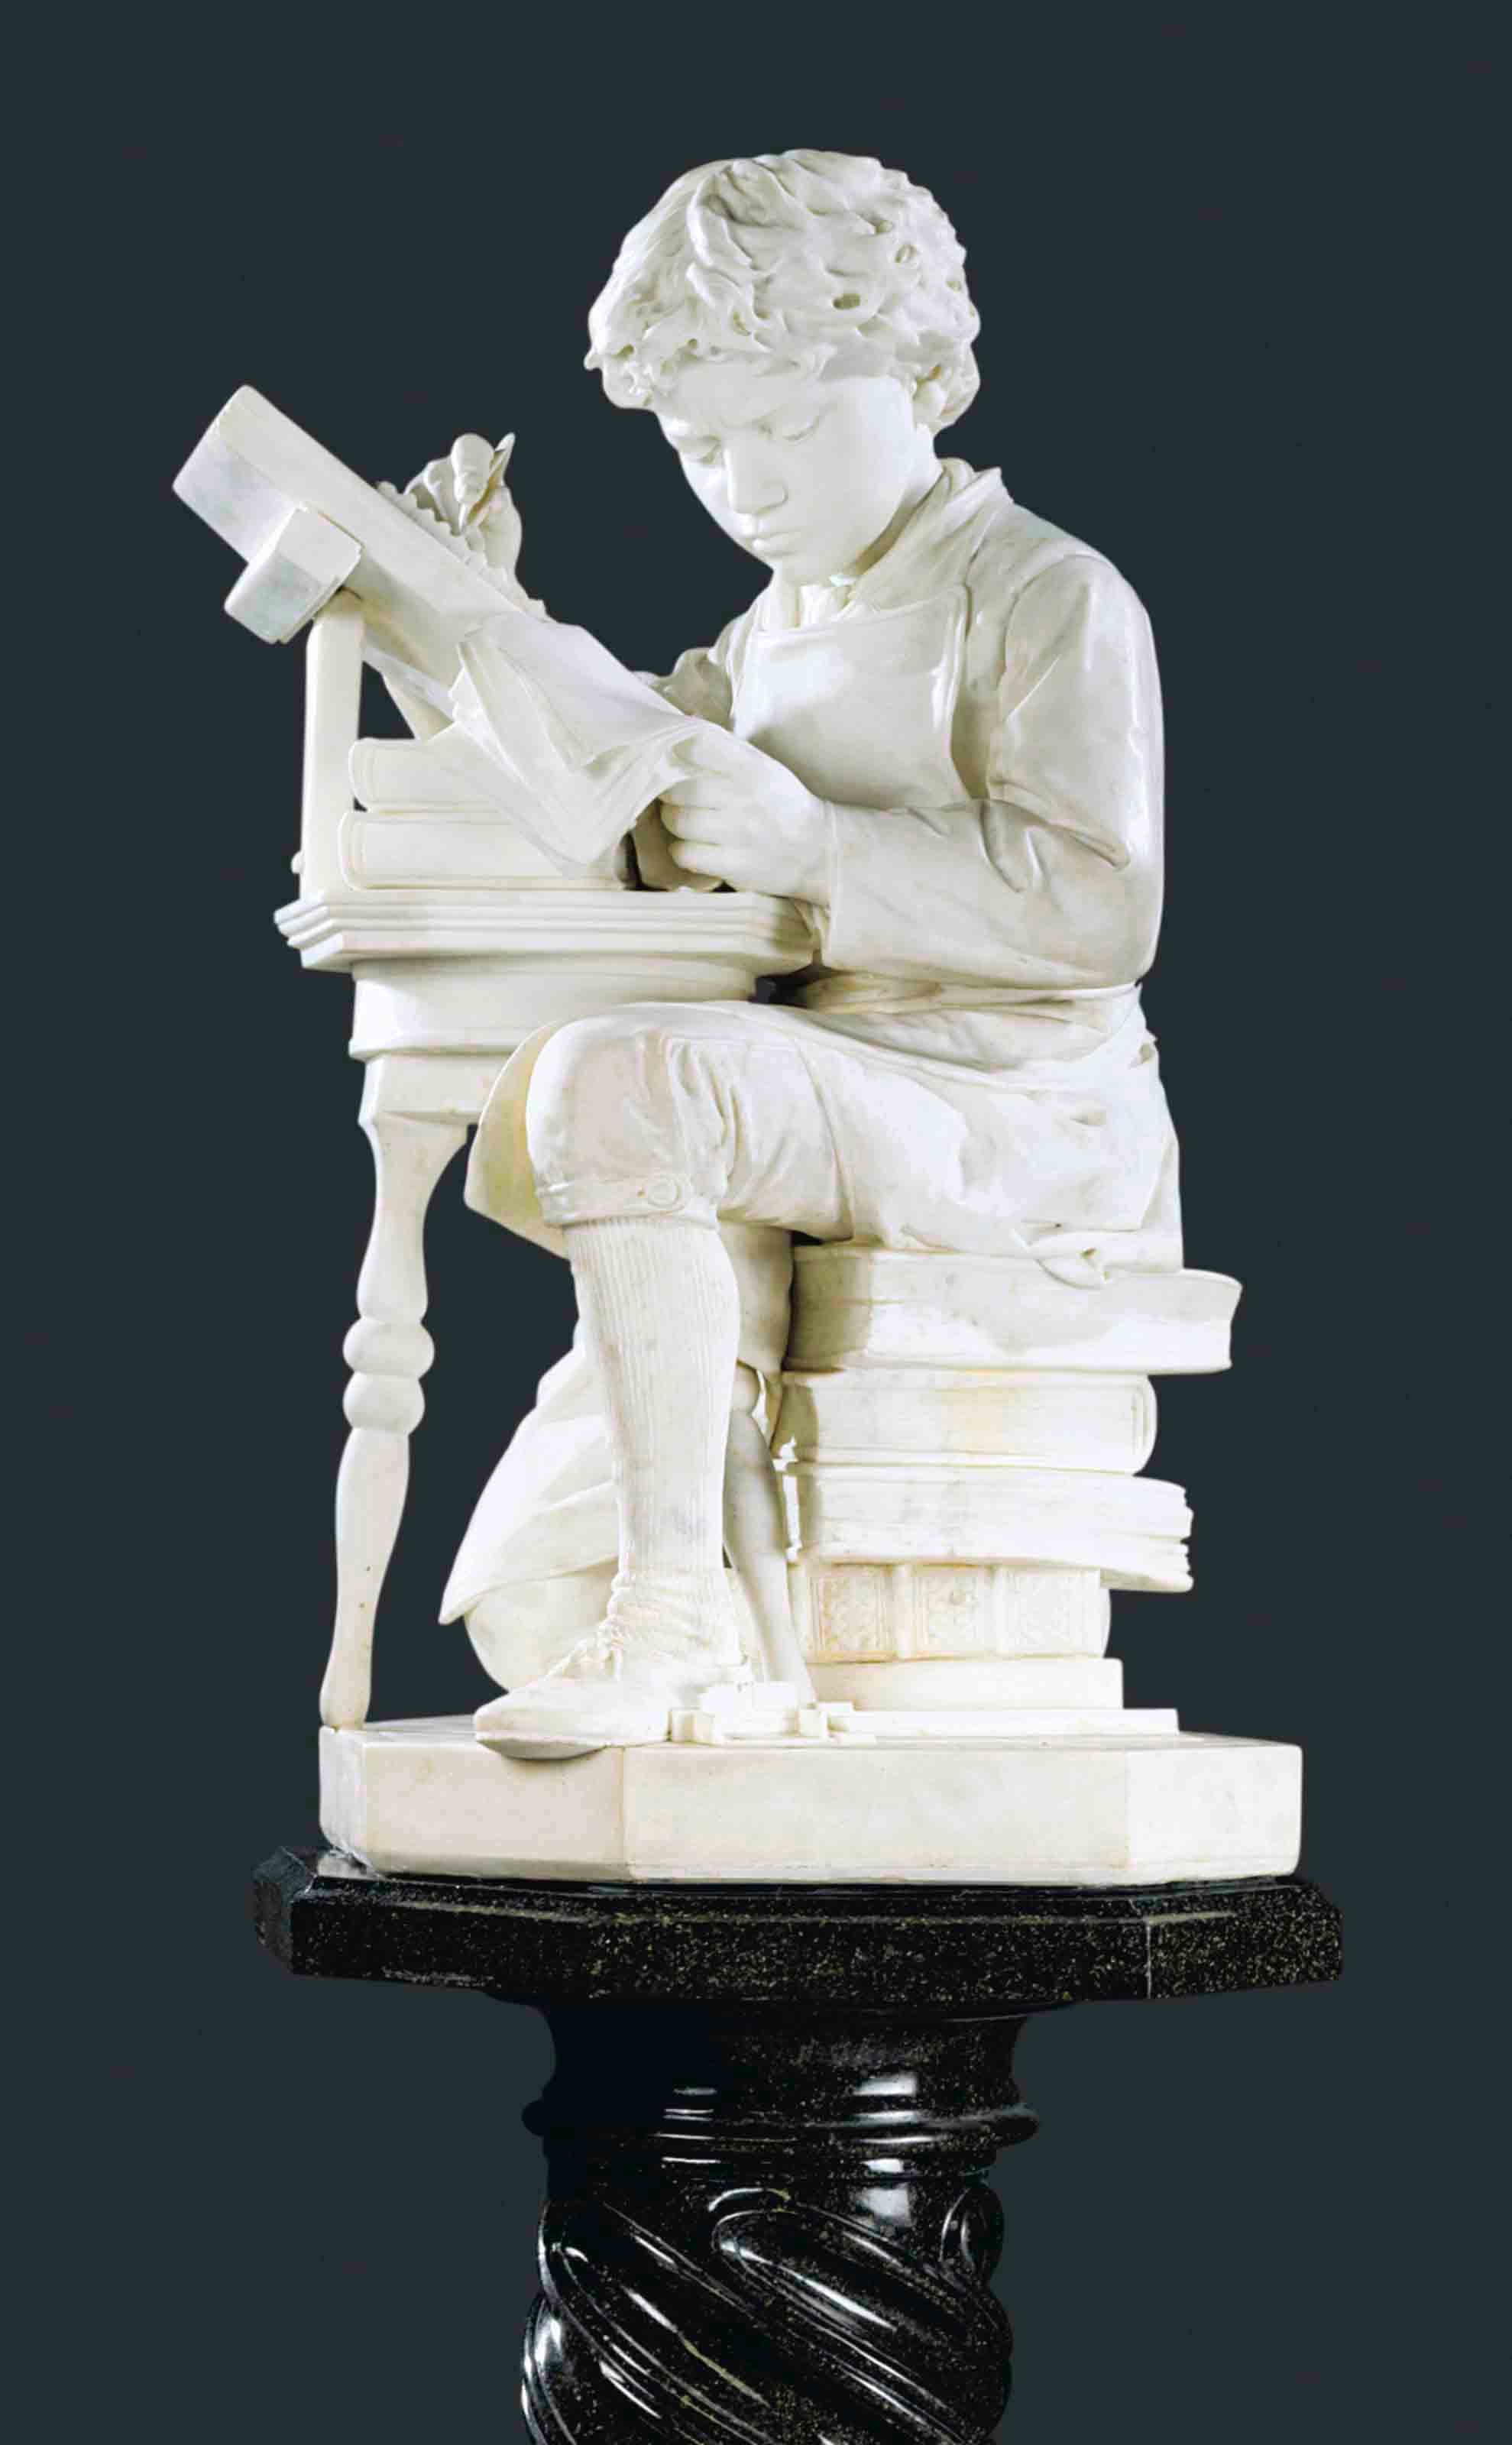 A ITALIAN MARBLE FIGURE OF A BOY, POSSIBLY THE YOUNG MARK TWAIN